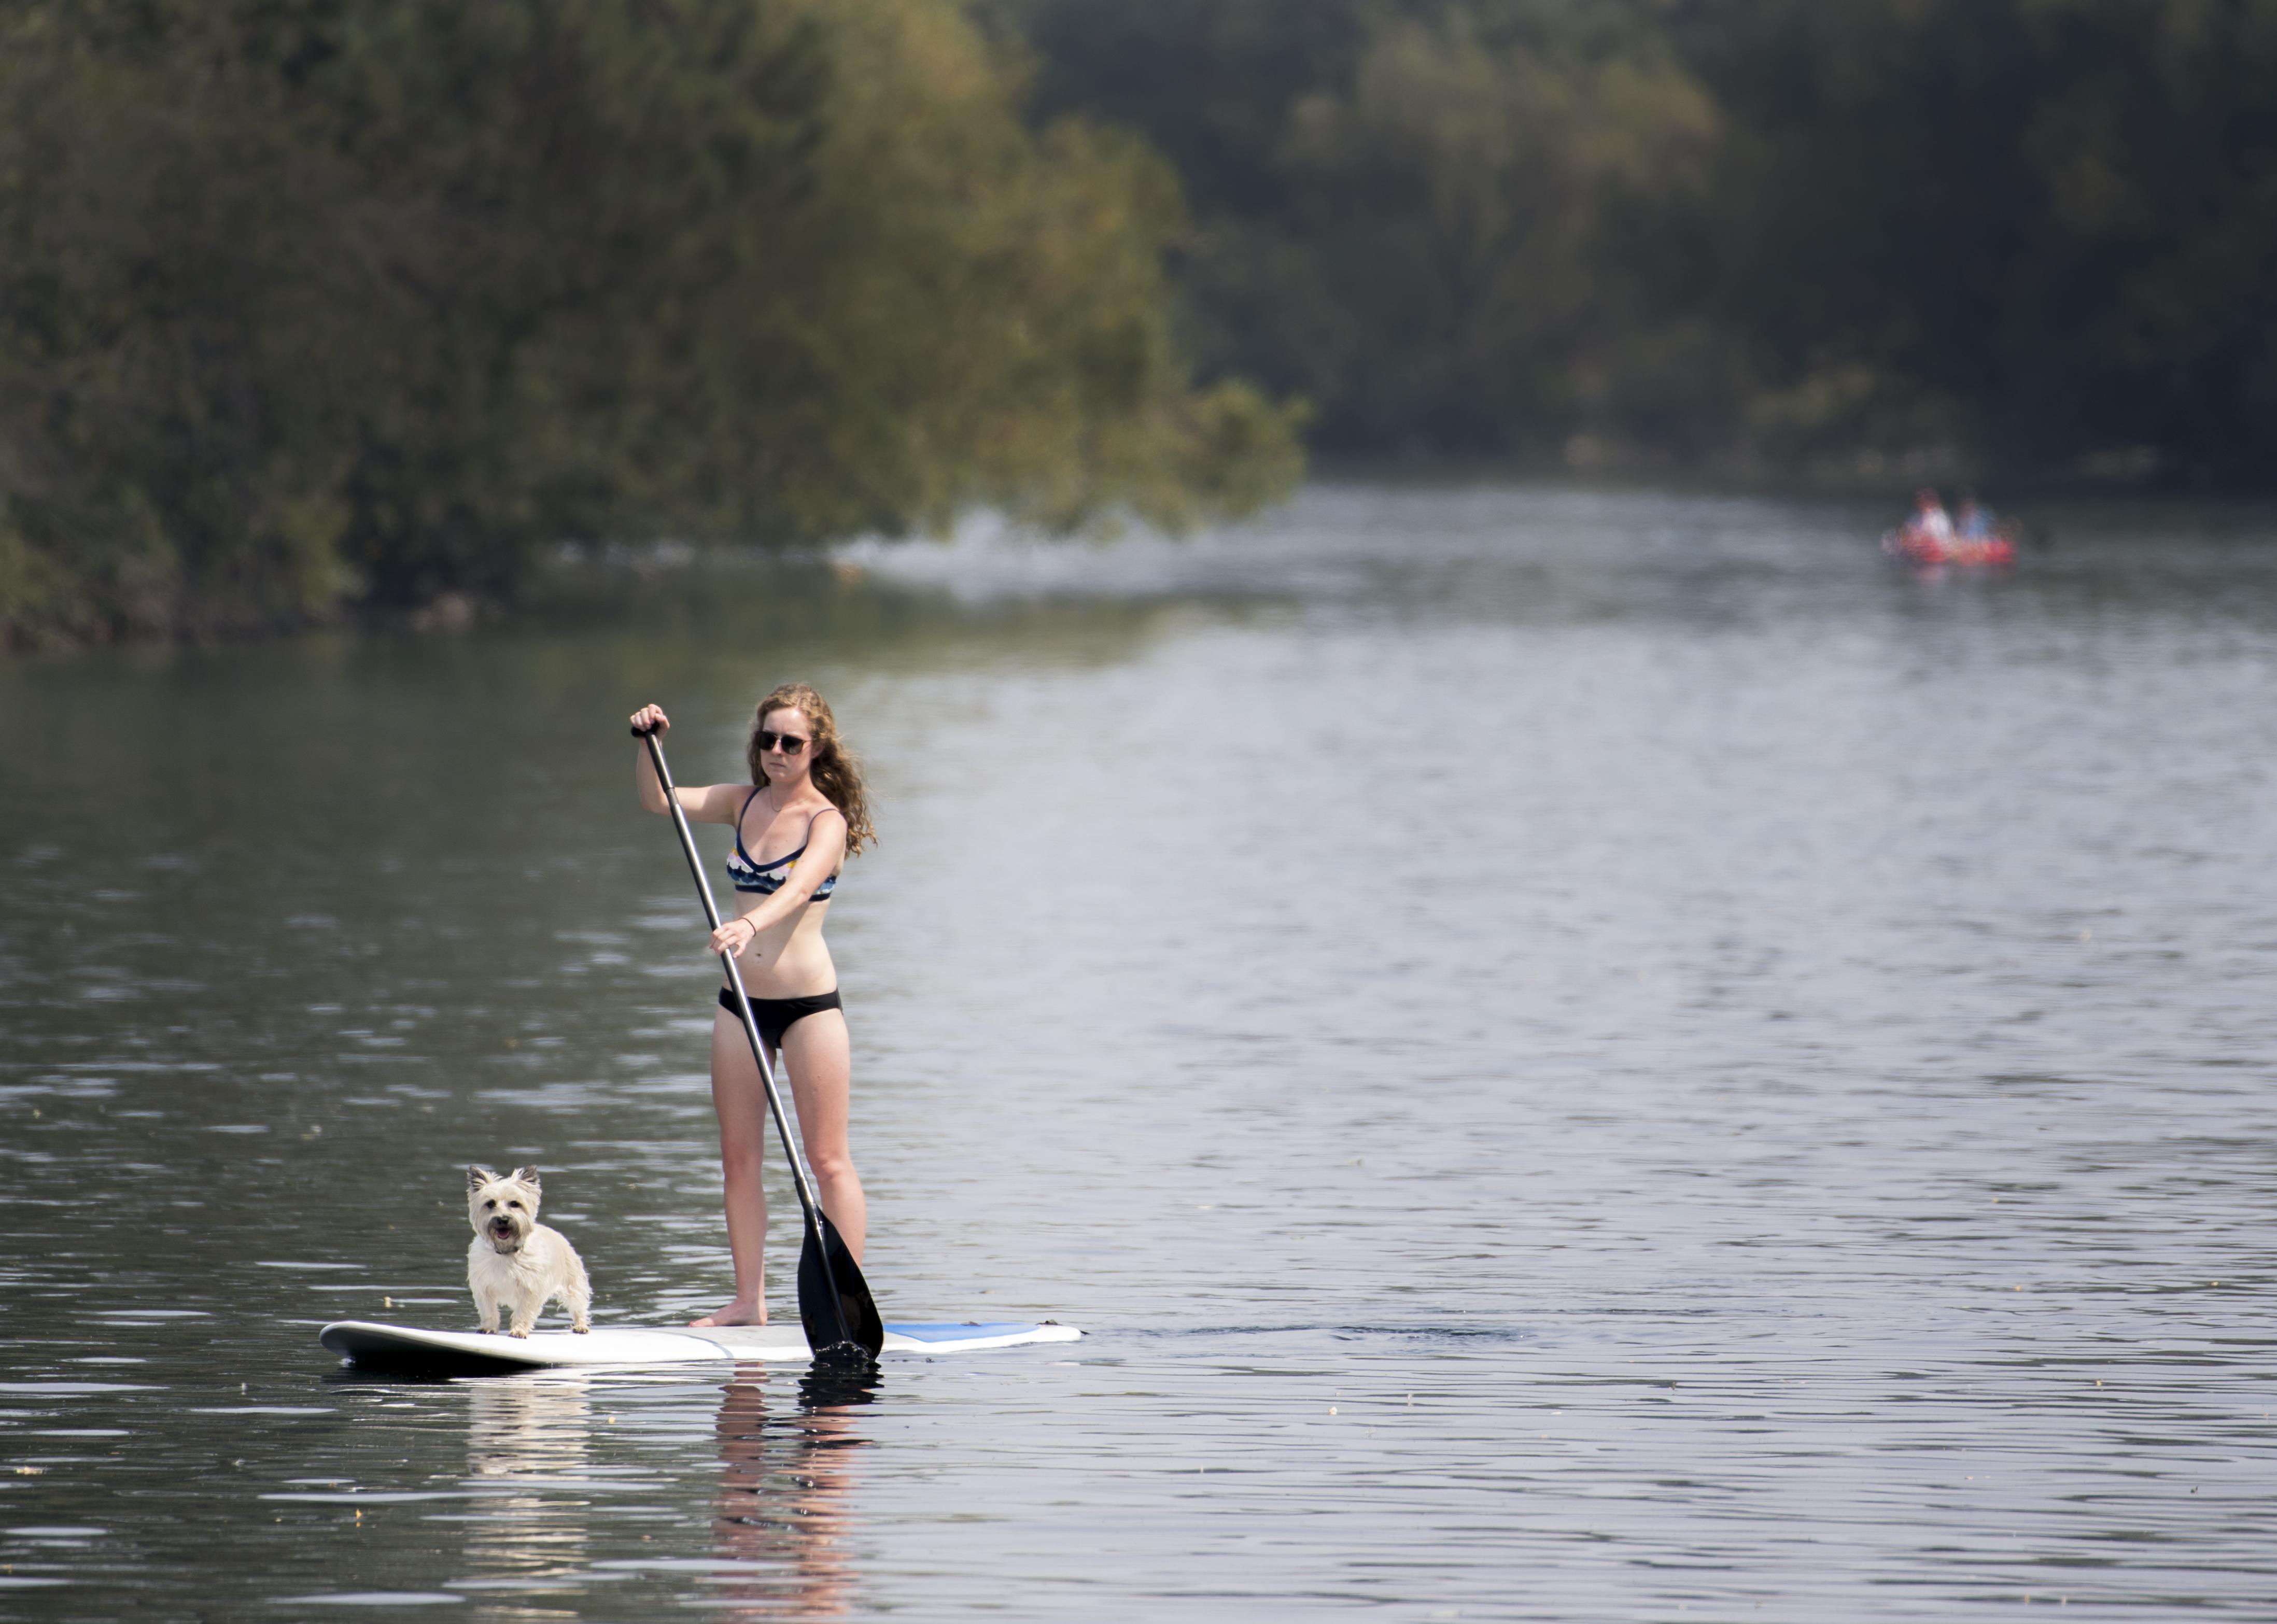 Sarah gotzian paddles a stand up paddleboard down the spokane river near argonne road with